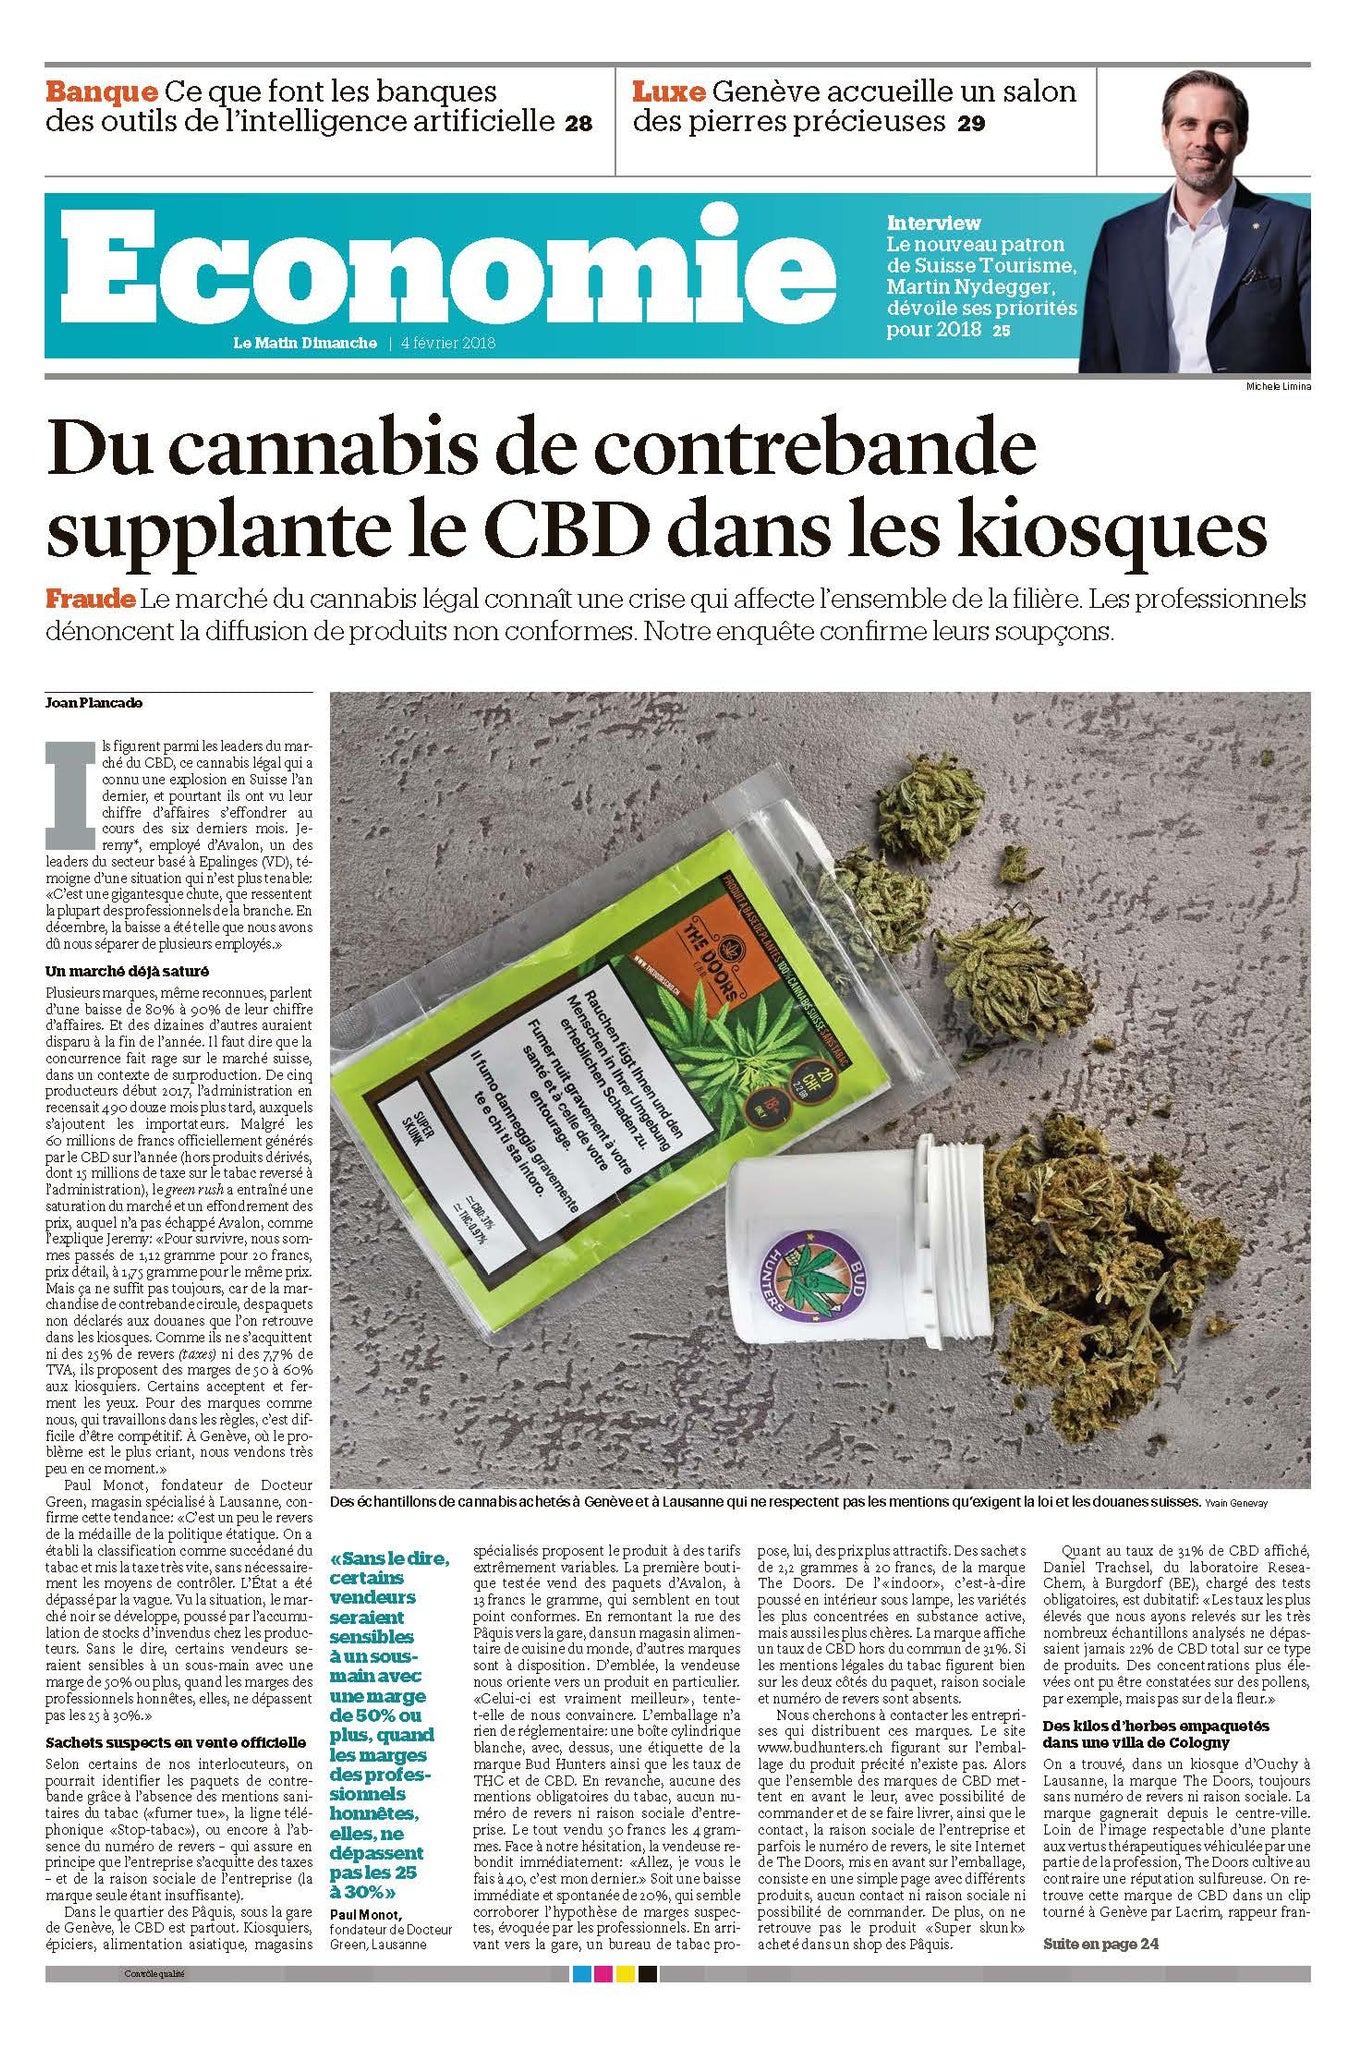 The interview with our co-founder, Victor Mathis, on Bilan newspaper